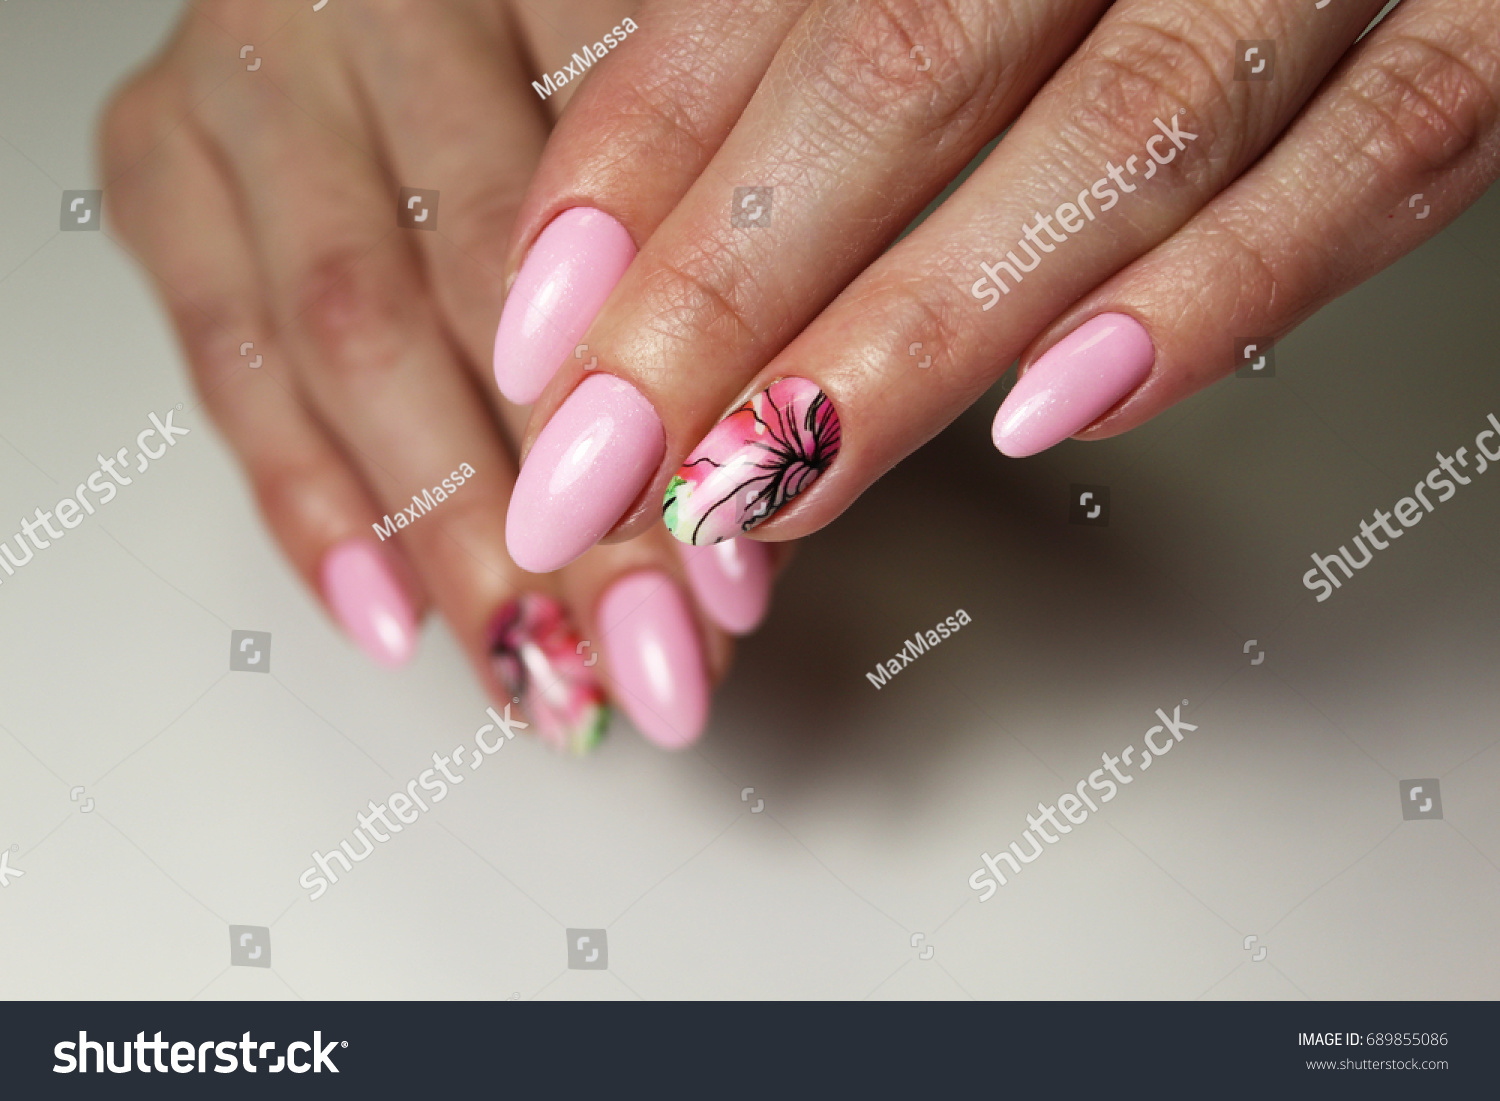 Nail Design Different Color Stock Photo (Edit Now)- Shutterstock